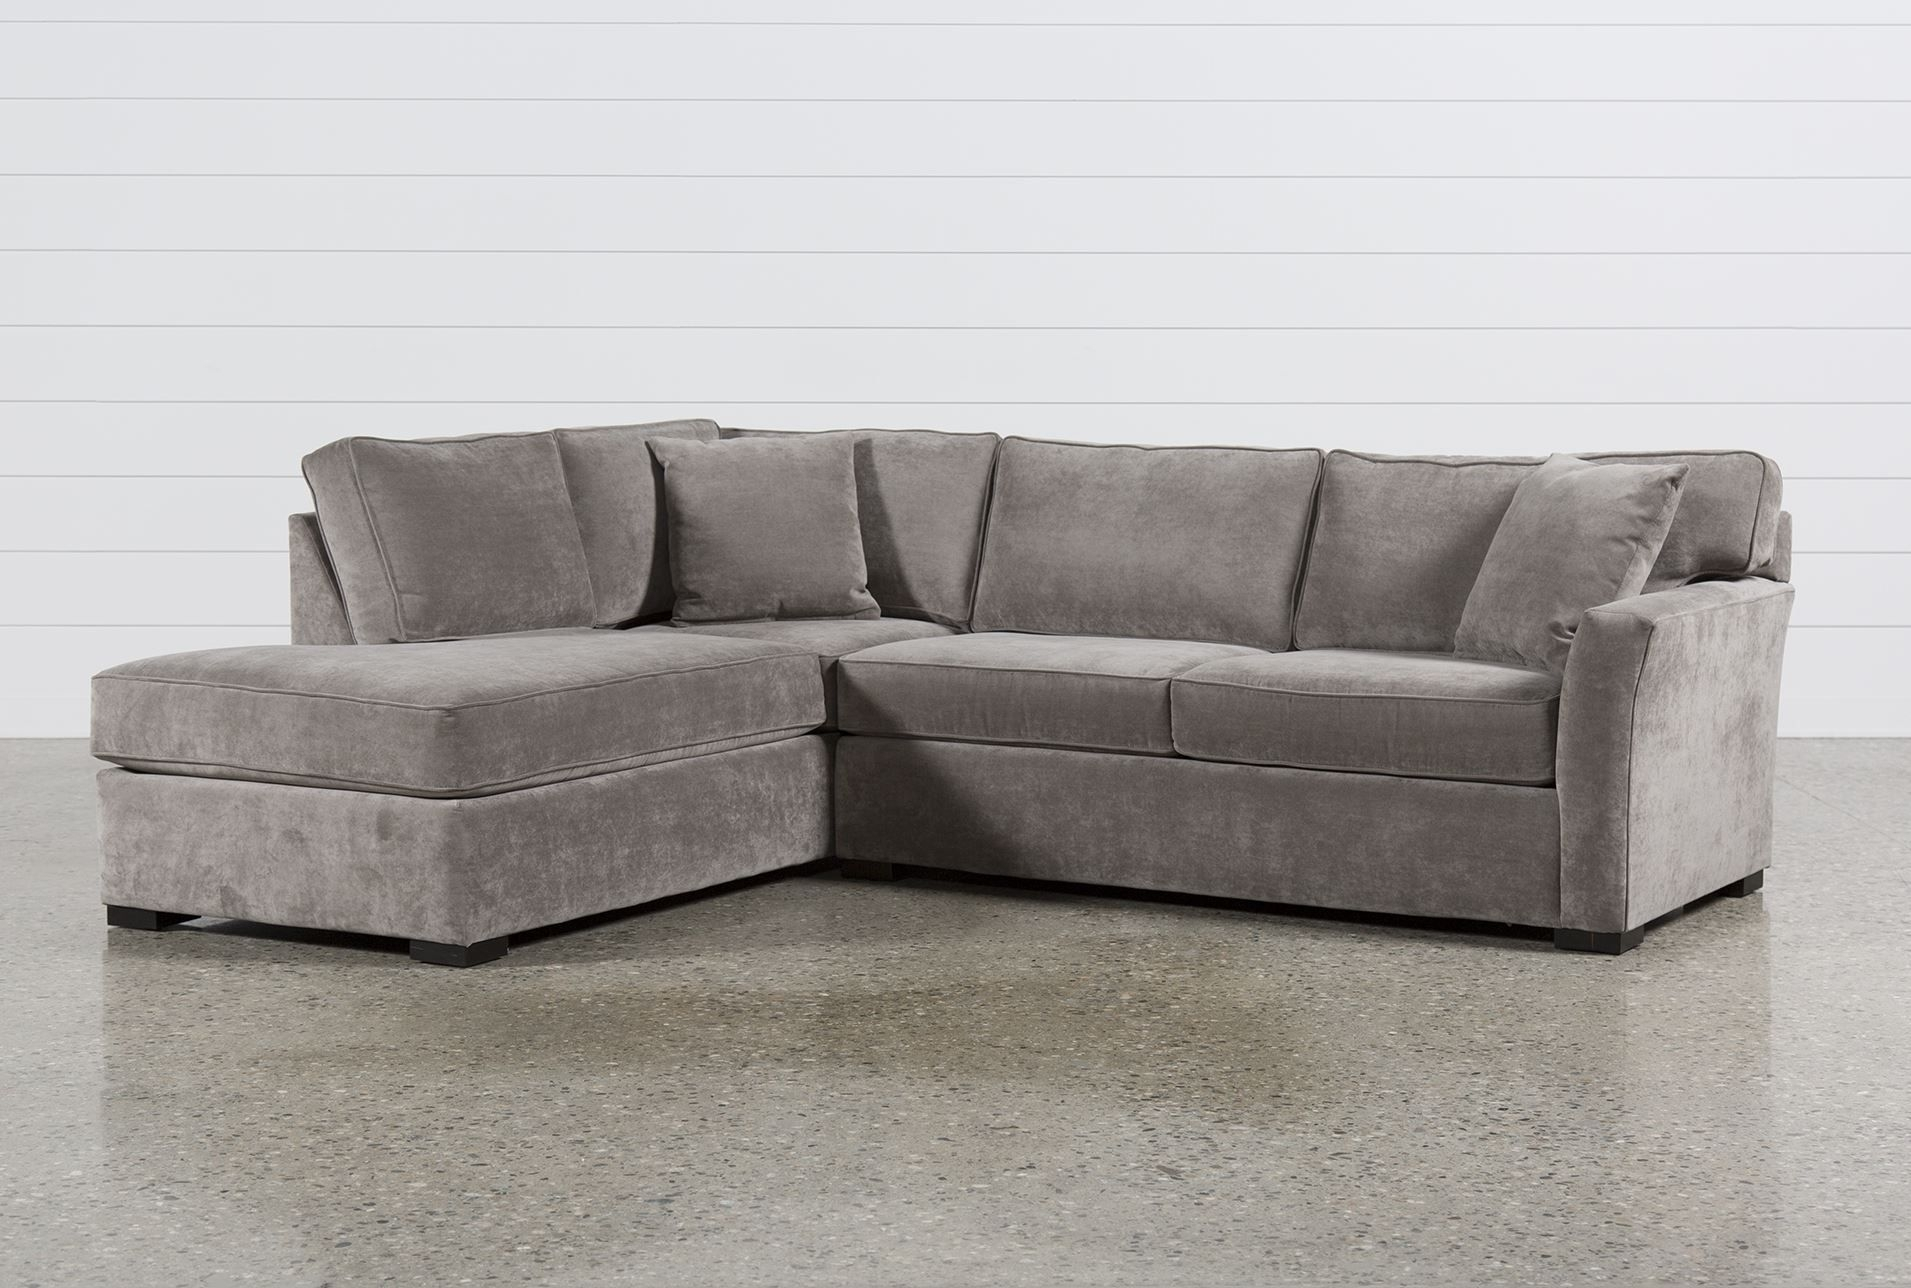 Aspen 2 Piece Sectional W/laf Chaise, Grey, Sofas | Aspen And Apartments In Avery 2 Piece Sectionals With Raf Armless Chaise (Image 2 of 25)